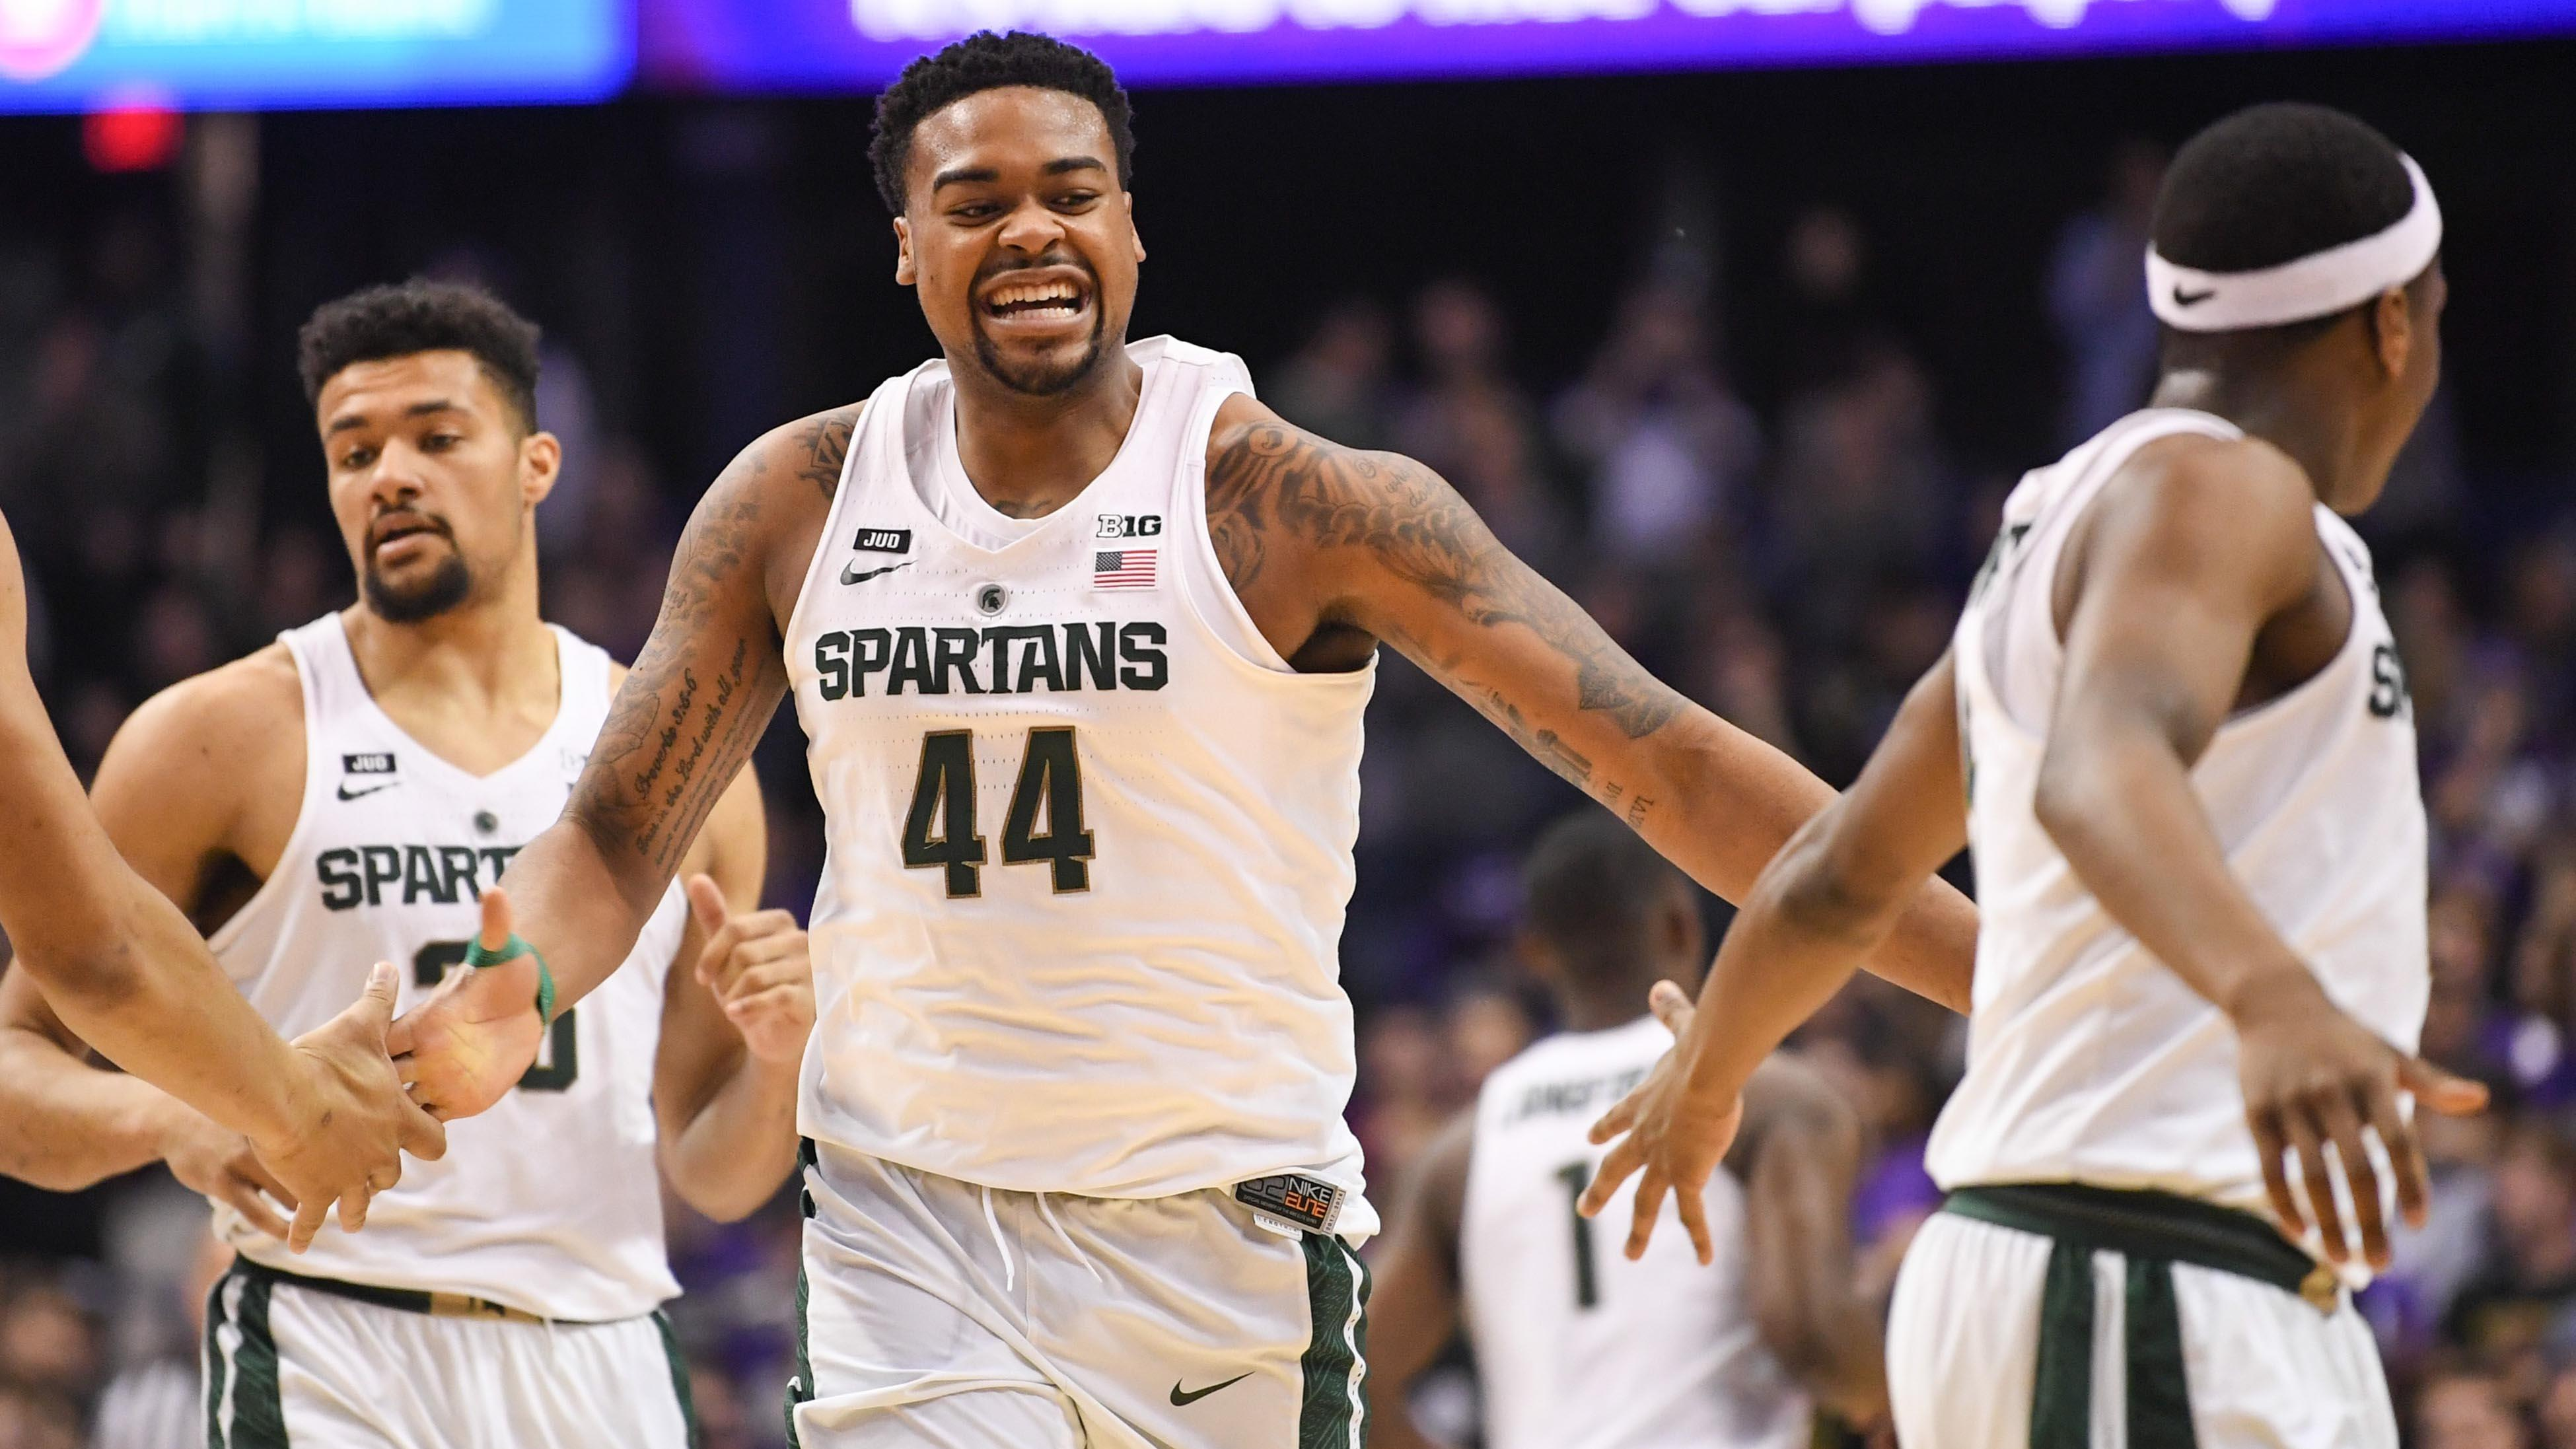 Michigan State's Nick Ward